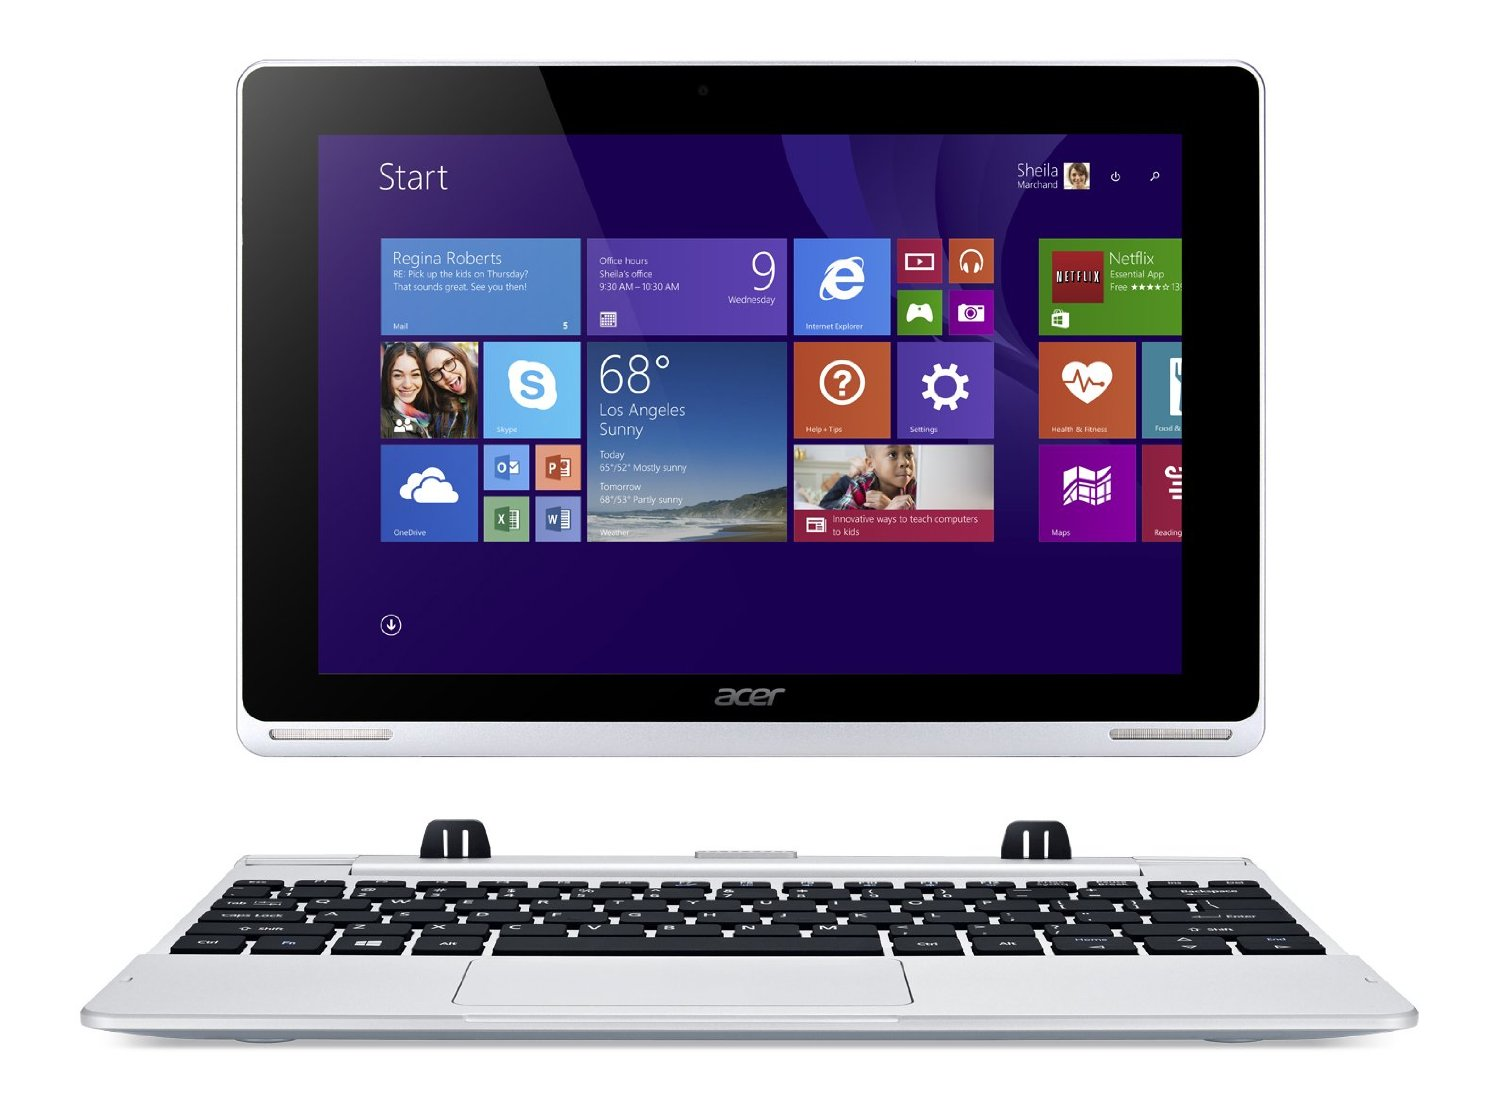 new acer aspire switch 10 1 laptop 2gb 64gb windows 8 sw5. Black Bedroom Furniture Sets. Home Design Ideas